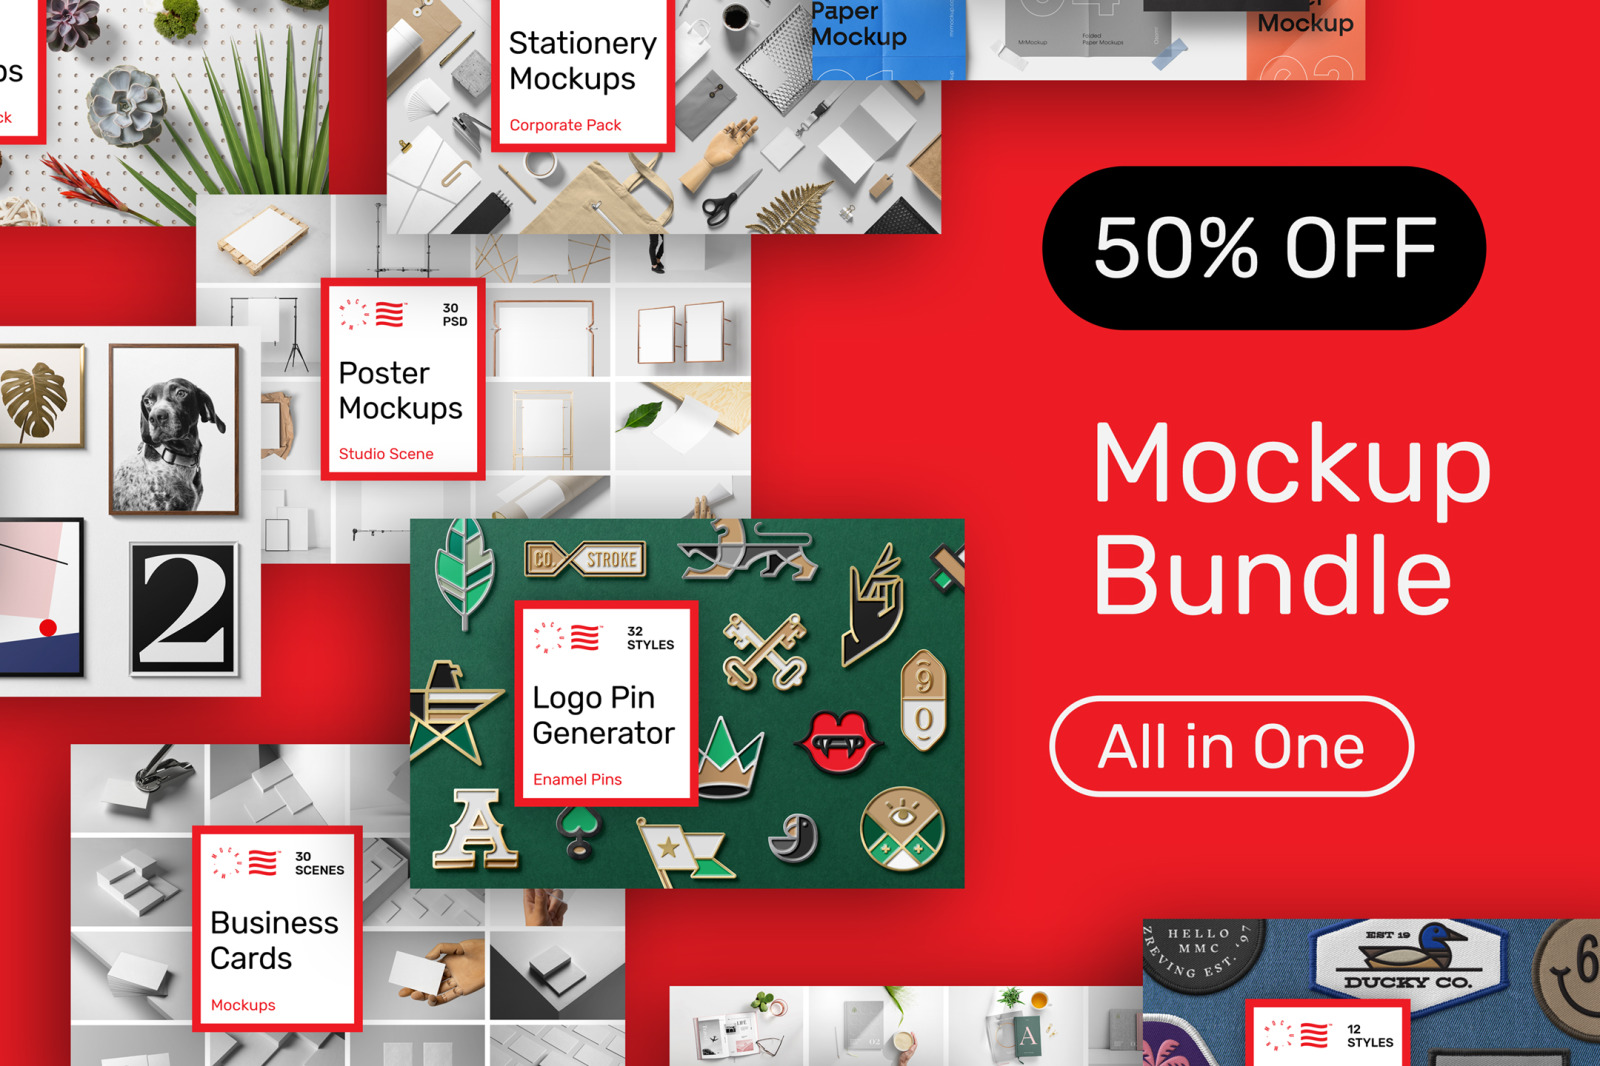 Mockups Bundle - All in One Pack